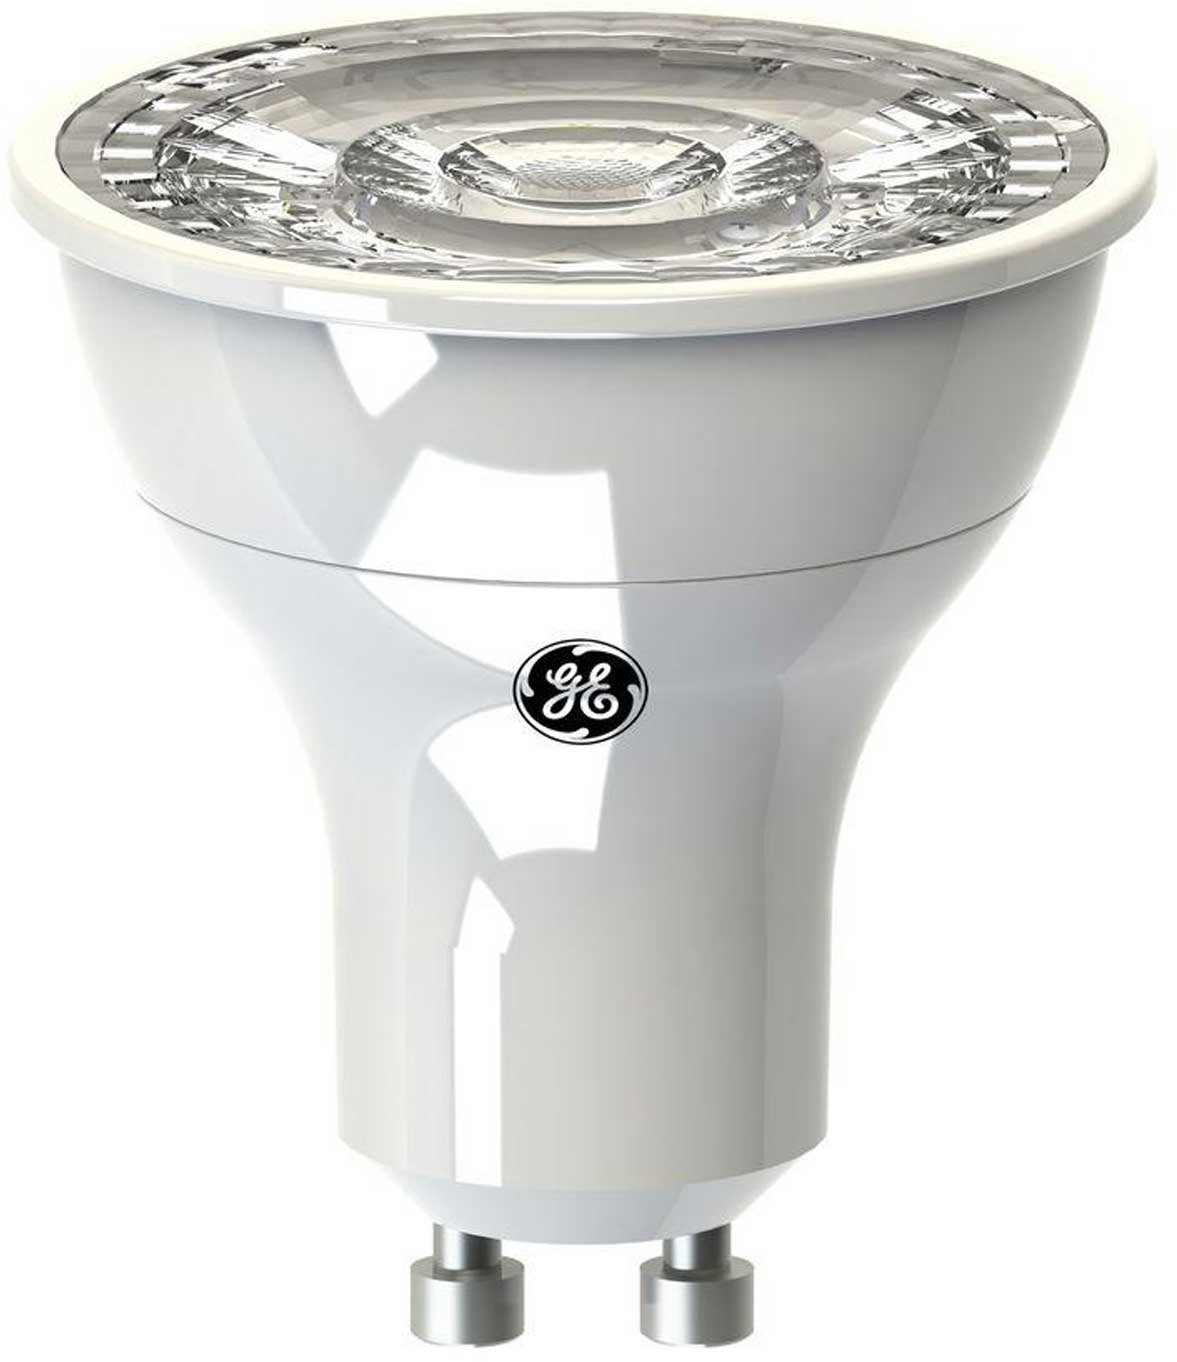 GE Lighting 89020 Energy Smart LED 3.5 Watt 35 watt replacement 250 Lumen MR16 Floodlight Bulb with GU10 Base Sunshine 1 Pack